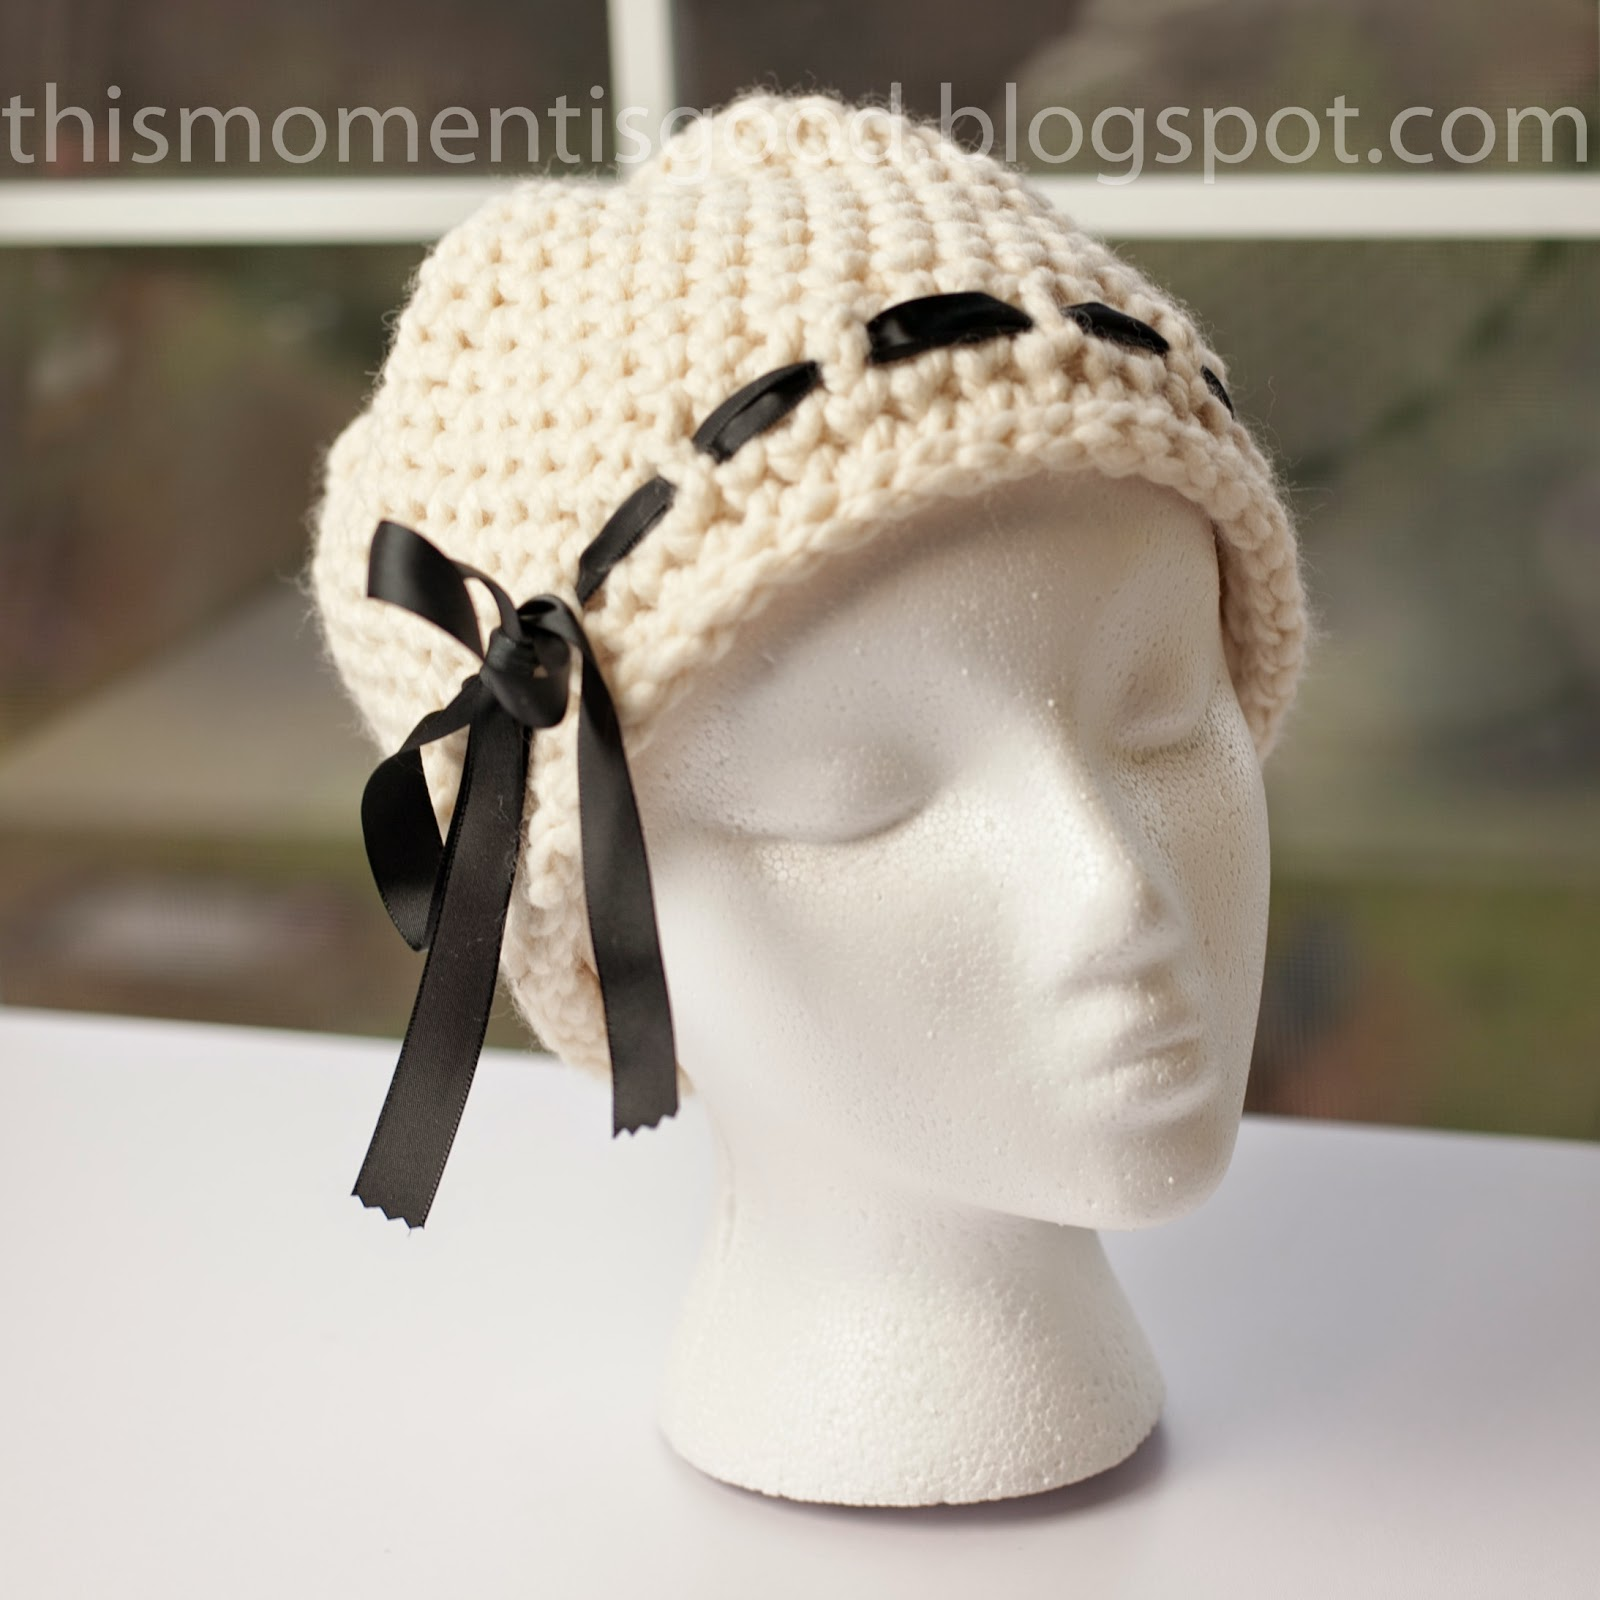 Loom Knit Elegant Ladies Hat Pattern Loom Knitting By This Moment